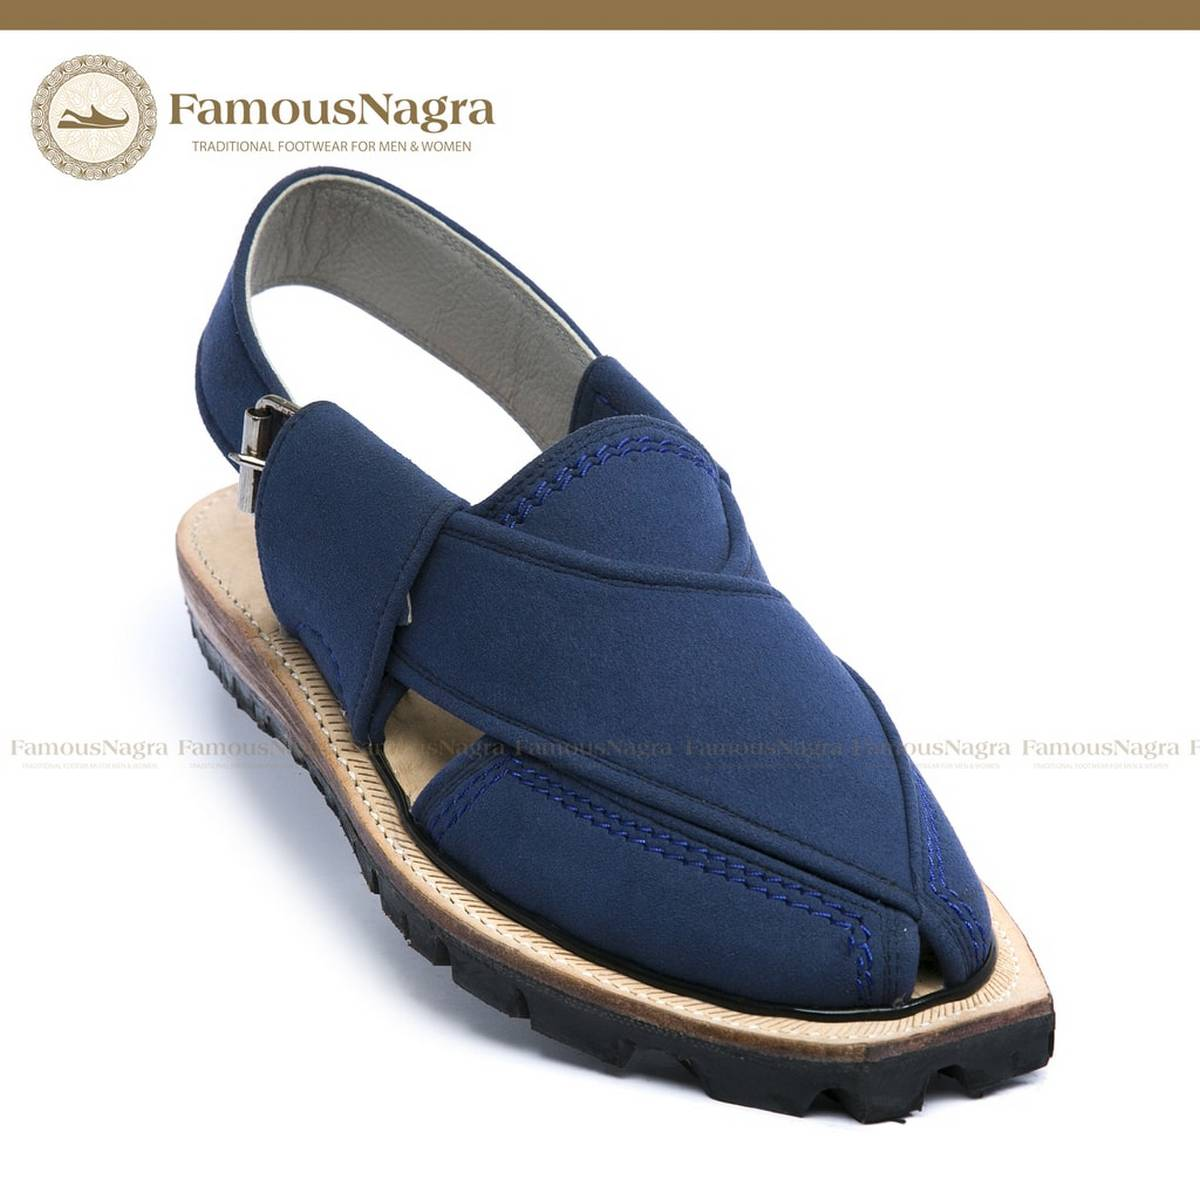 Norozi Chappal / Sandal – Gents – Suede / Sabar Leather – Blue – Leather Insole – Thick Tyre sole – Art 727